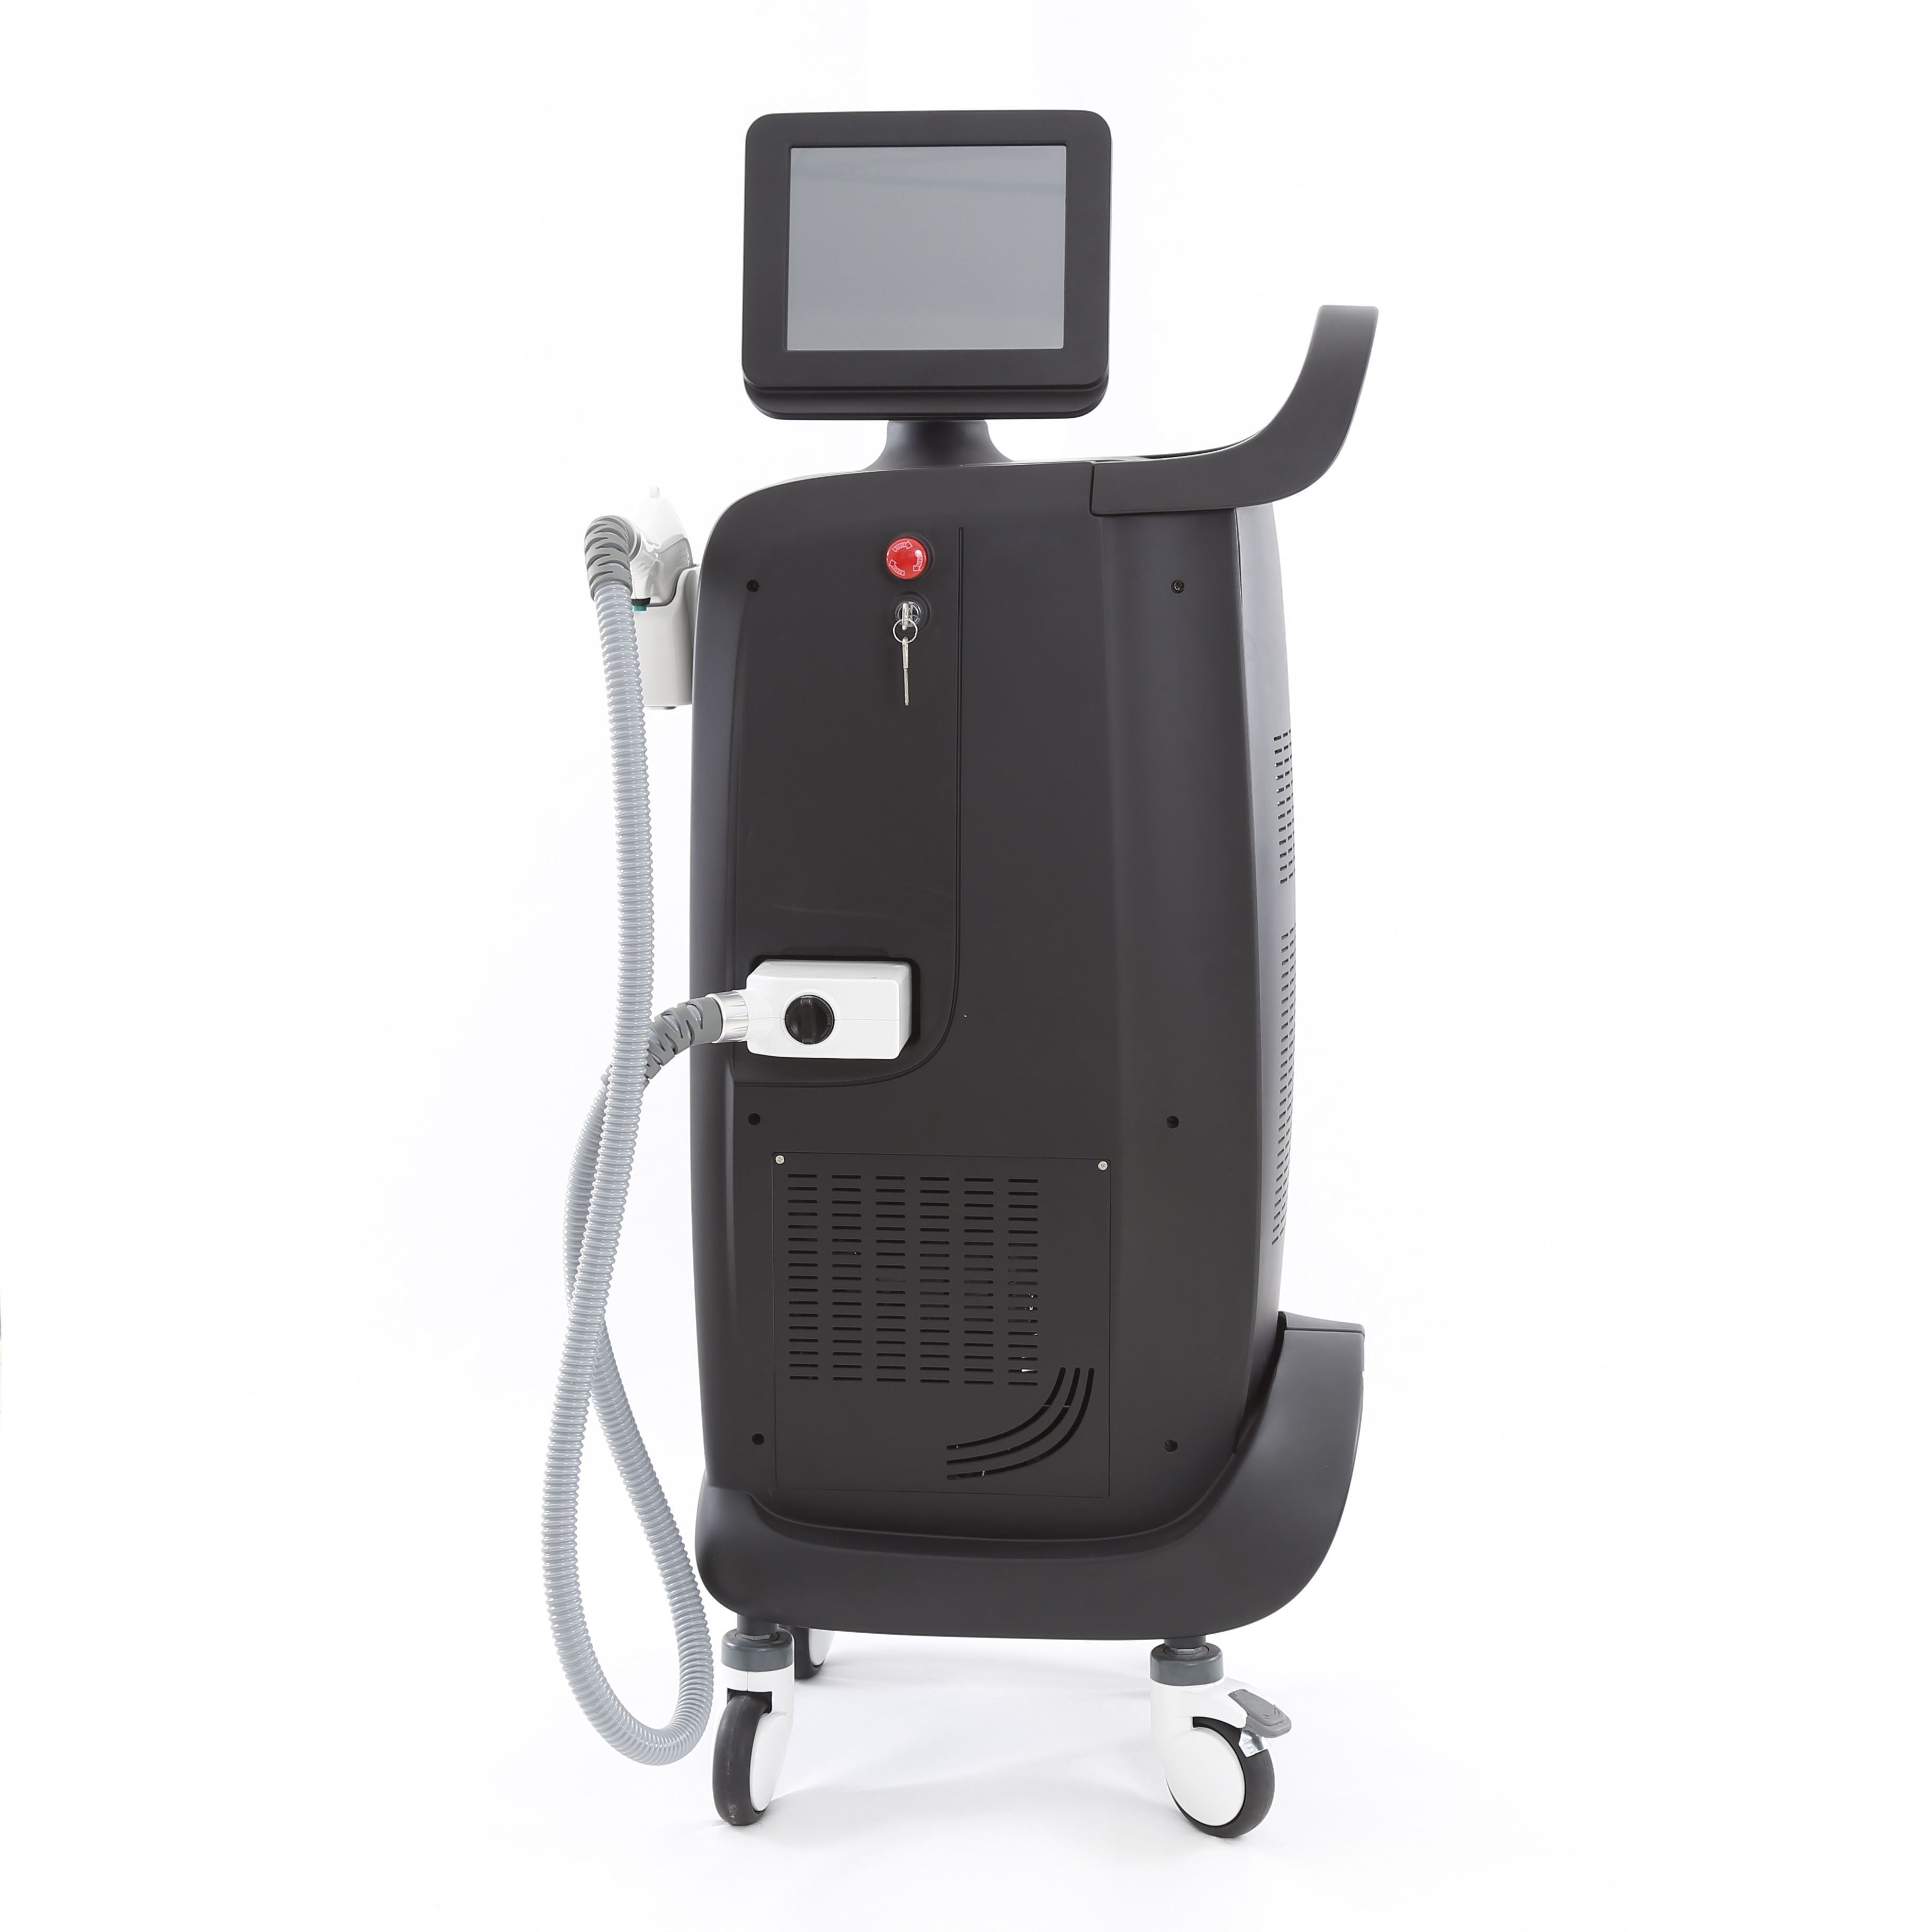 3 Wavelength Diode Laser For Hair Removal Machine Price Diode Laser